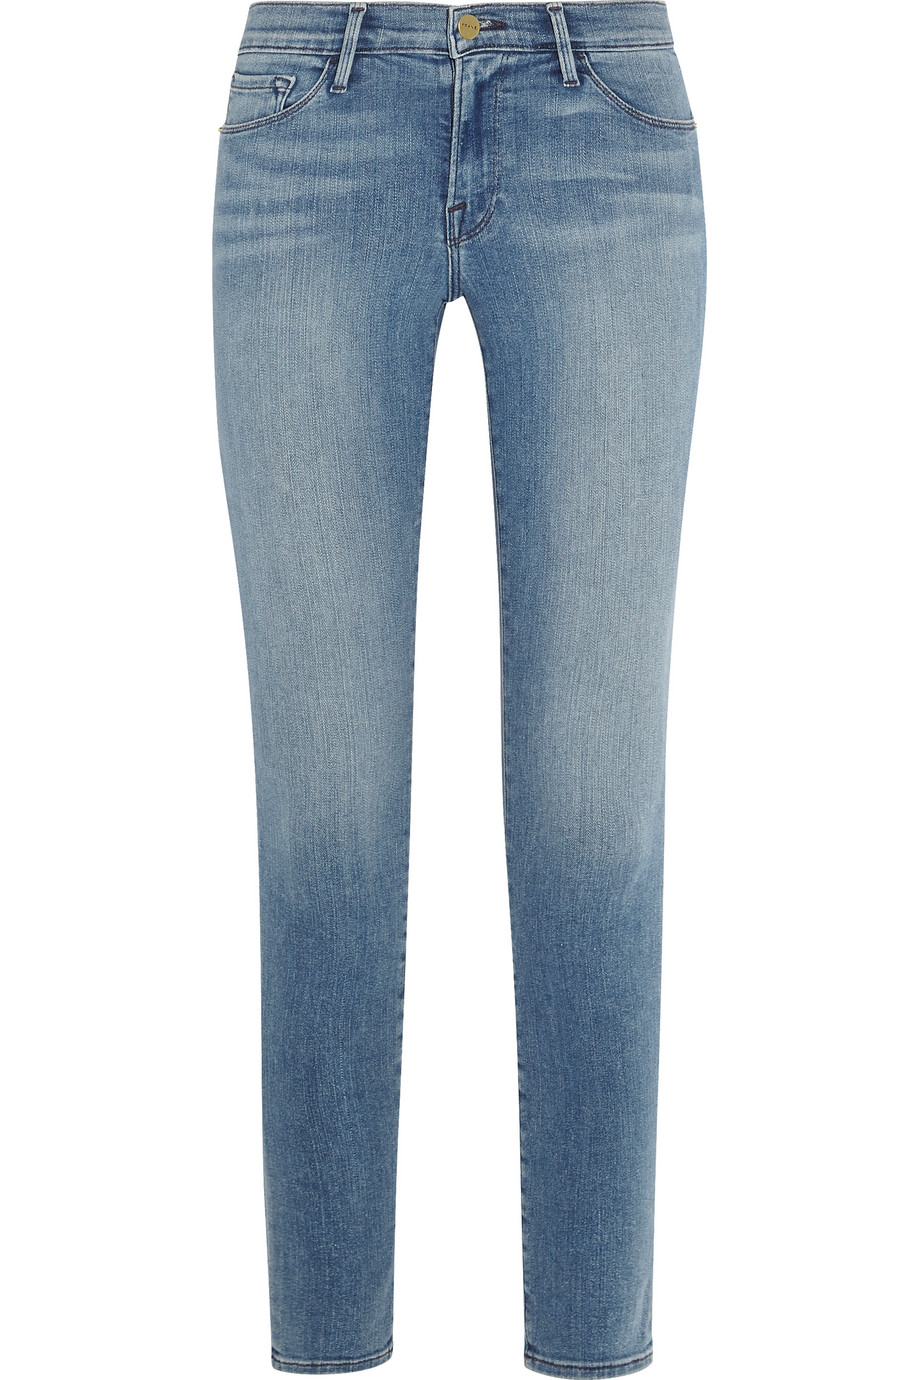 Frame Denim Le Skinny De Jeanne Mid-Rise Jeans, Light Denim, Women's, Size: 23